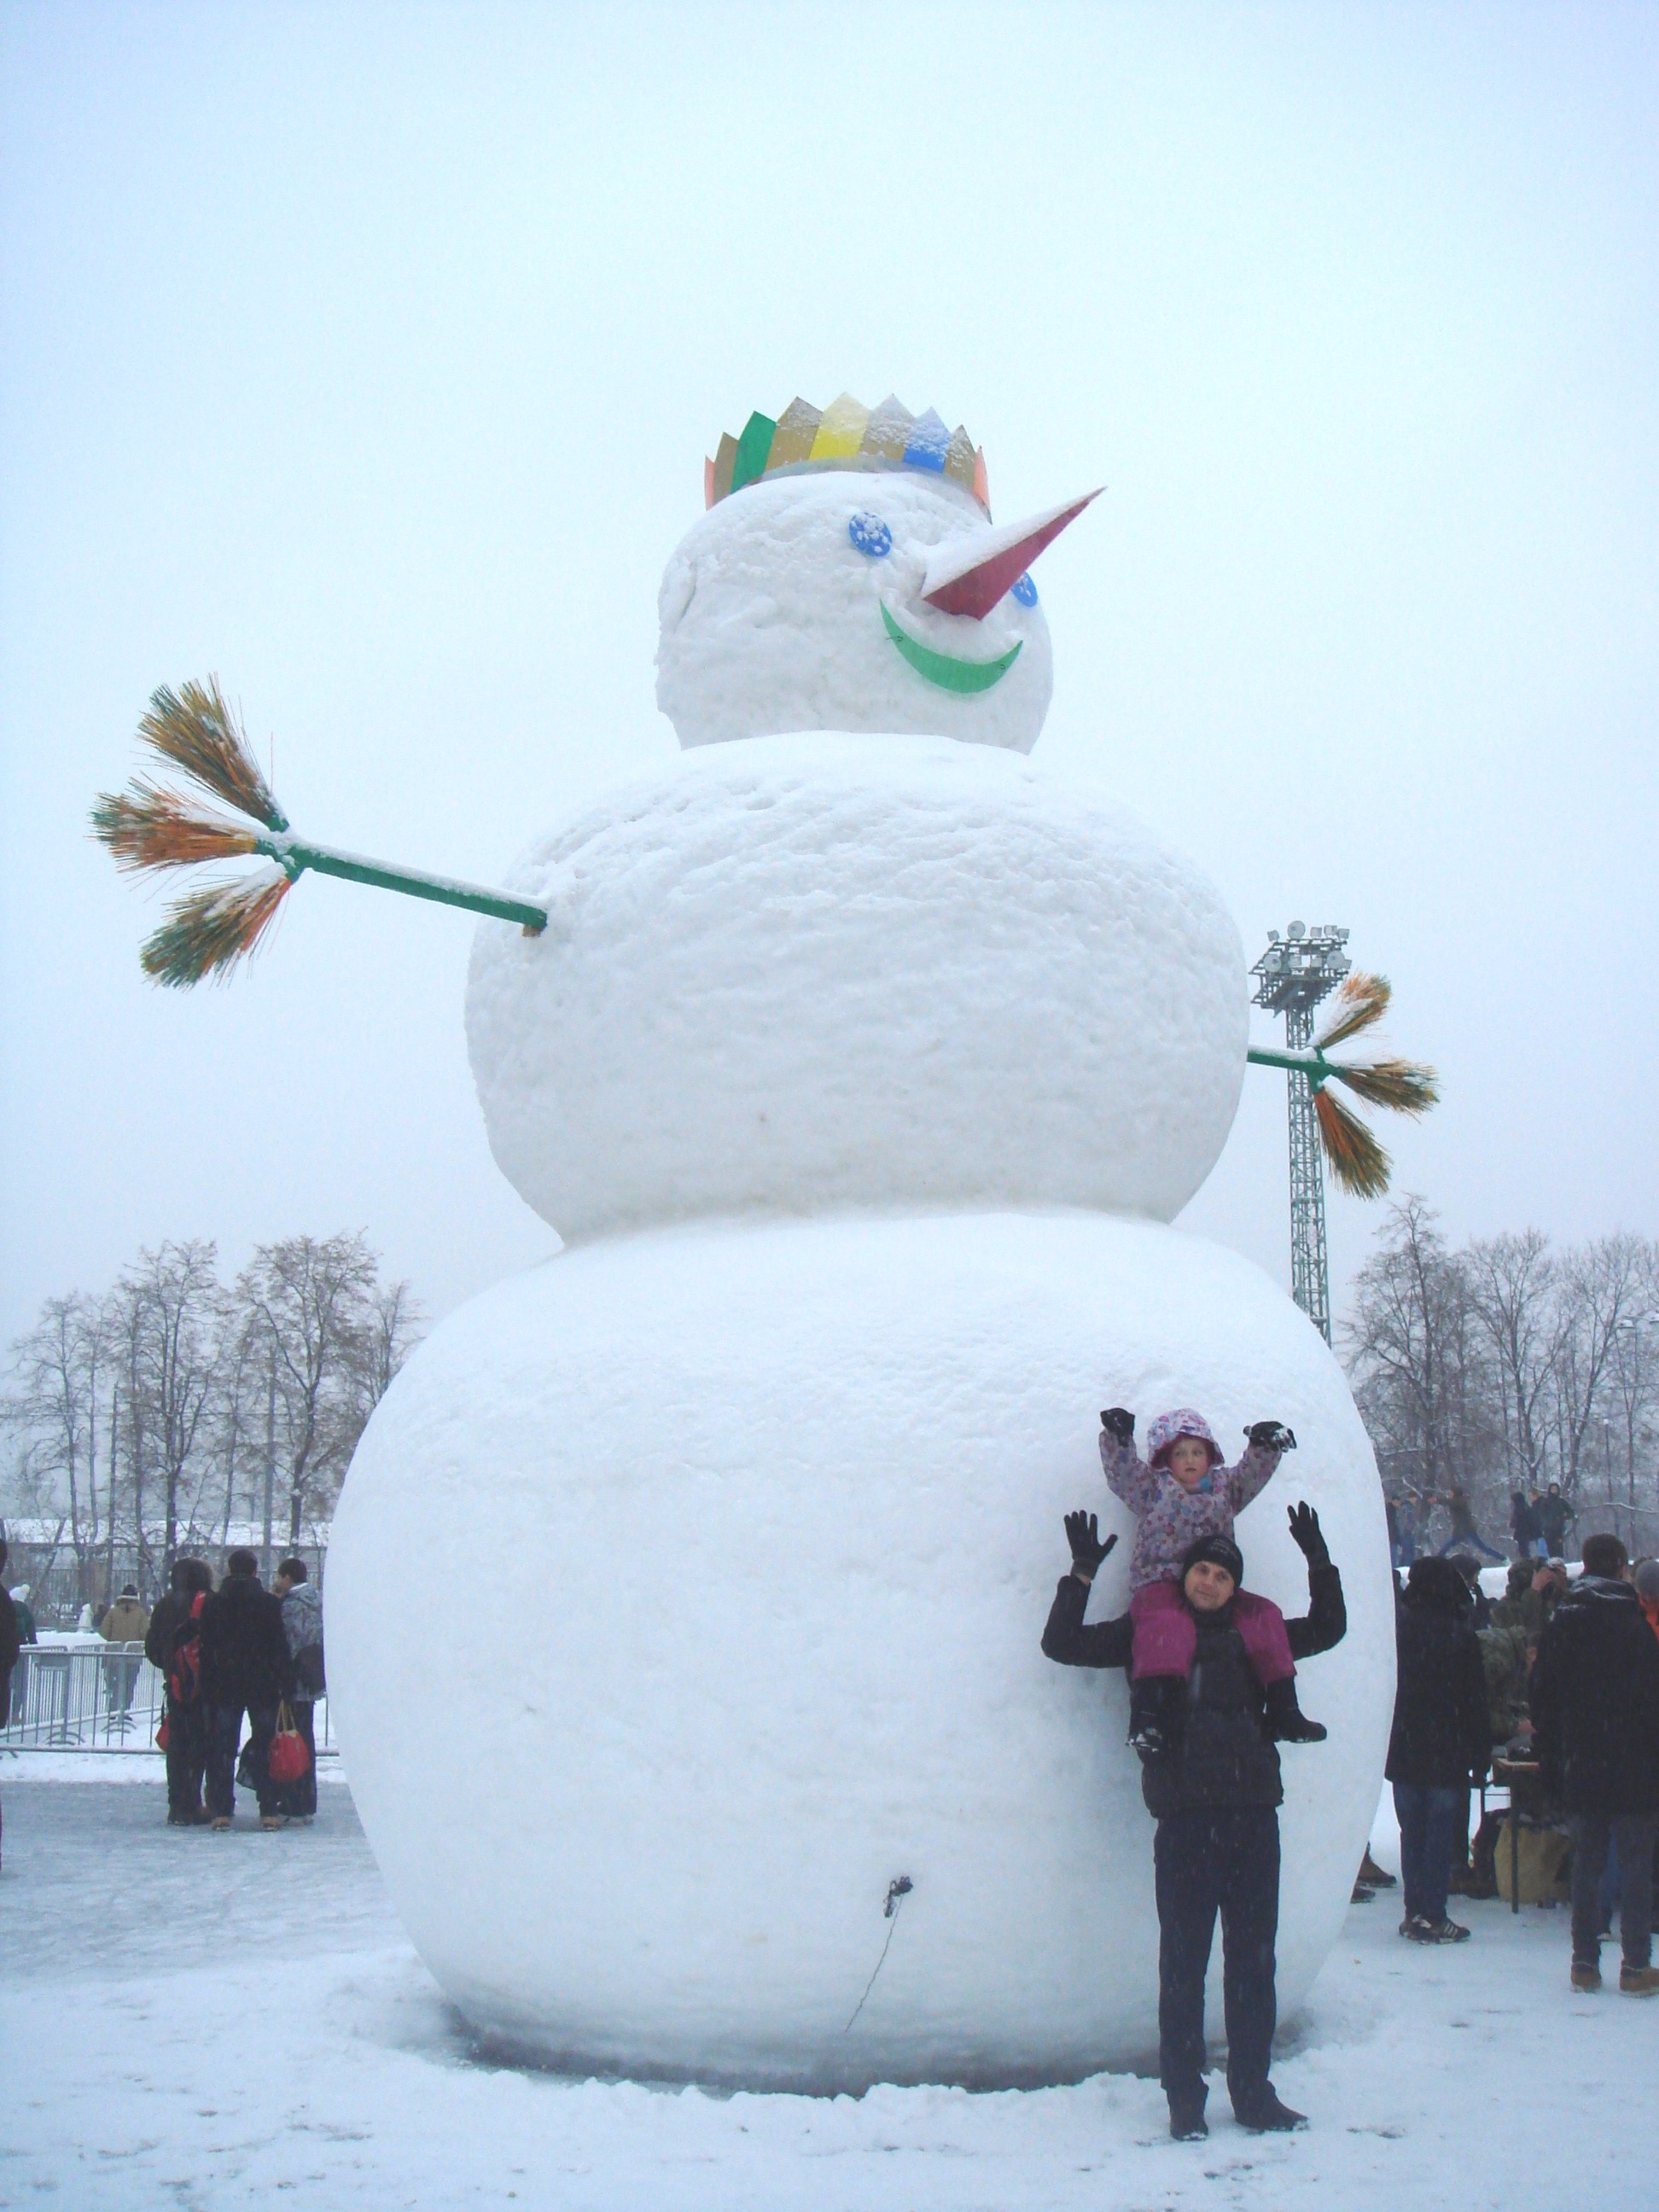 try beating this Snowman!